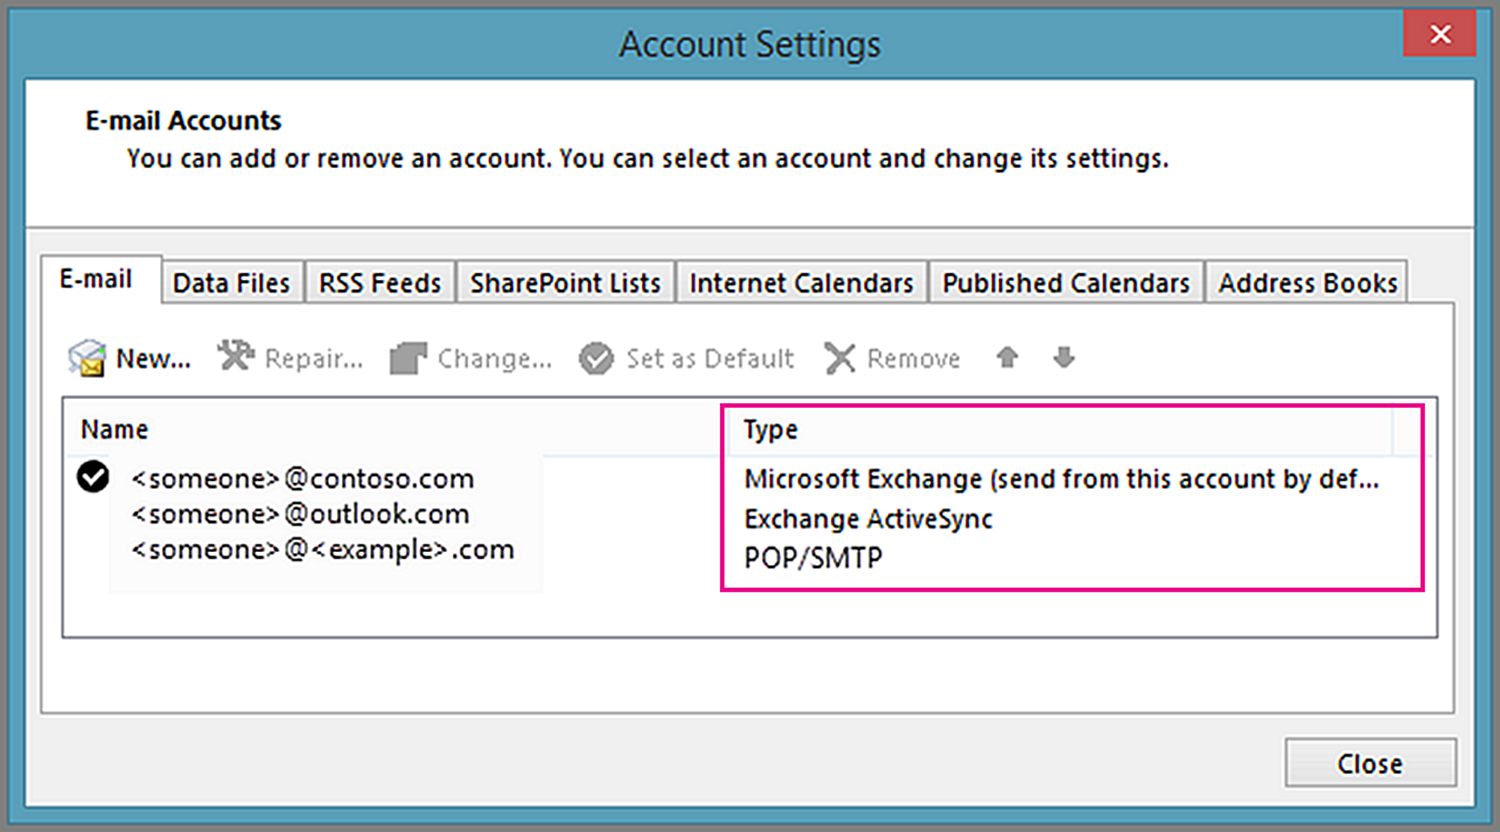 See the type of account you have in the Account Settings window in Outlook